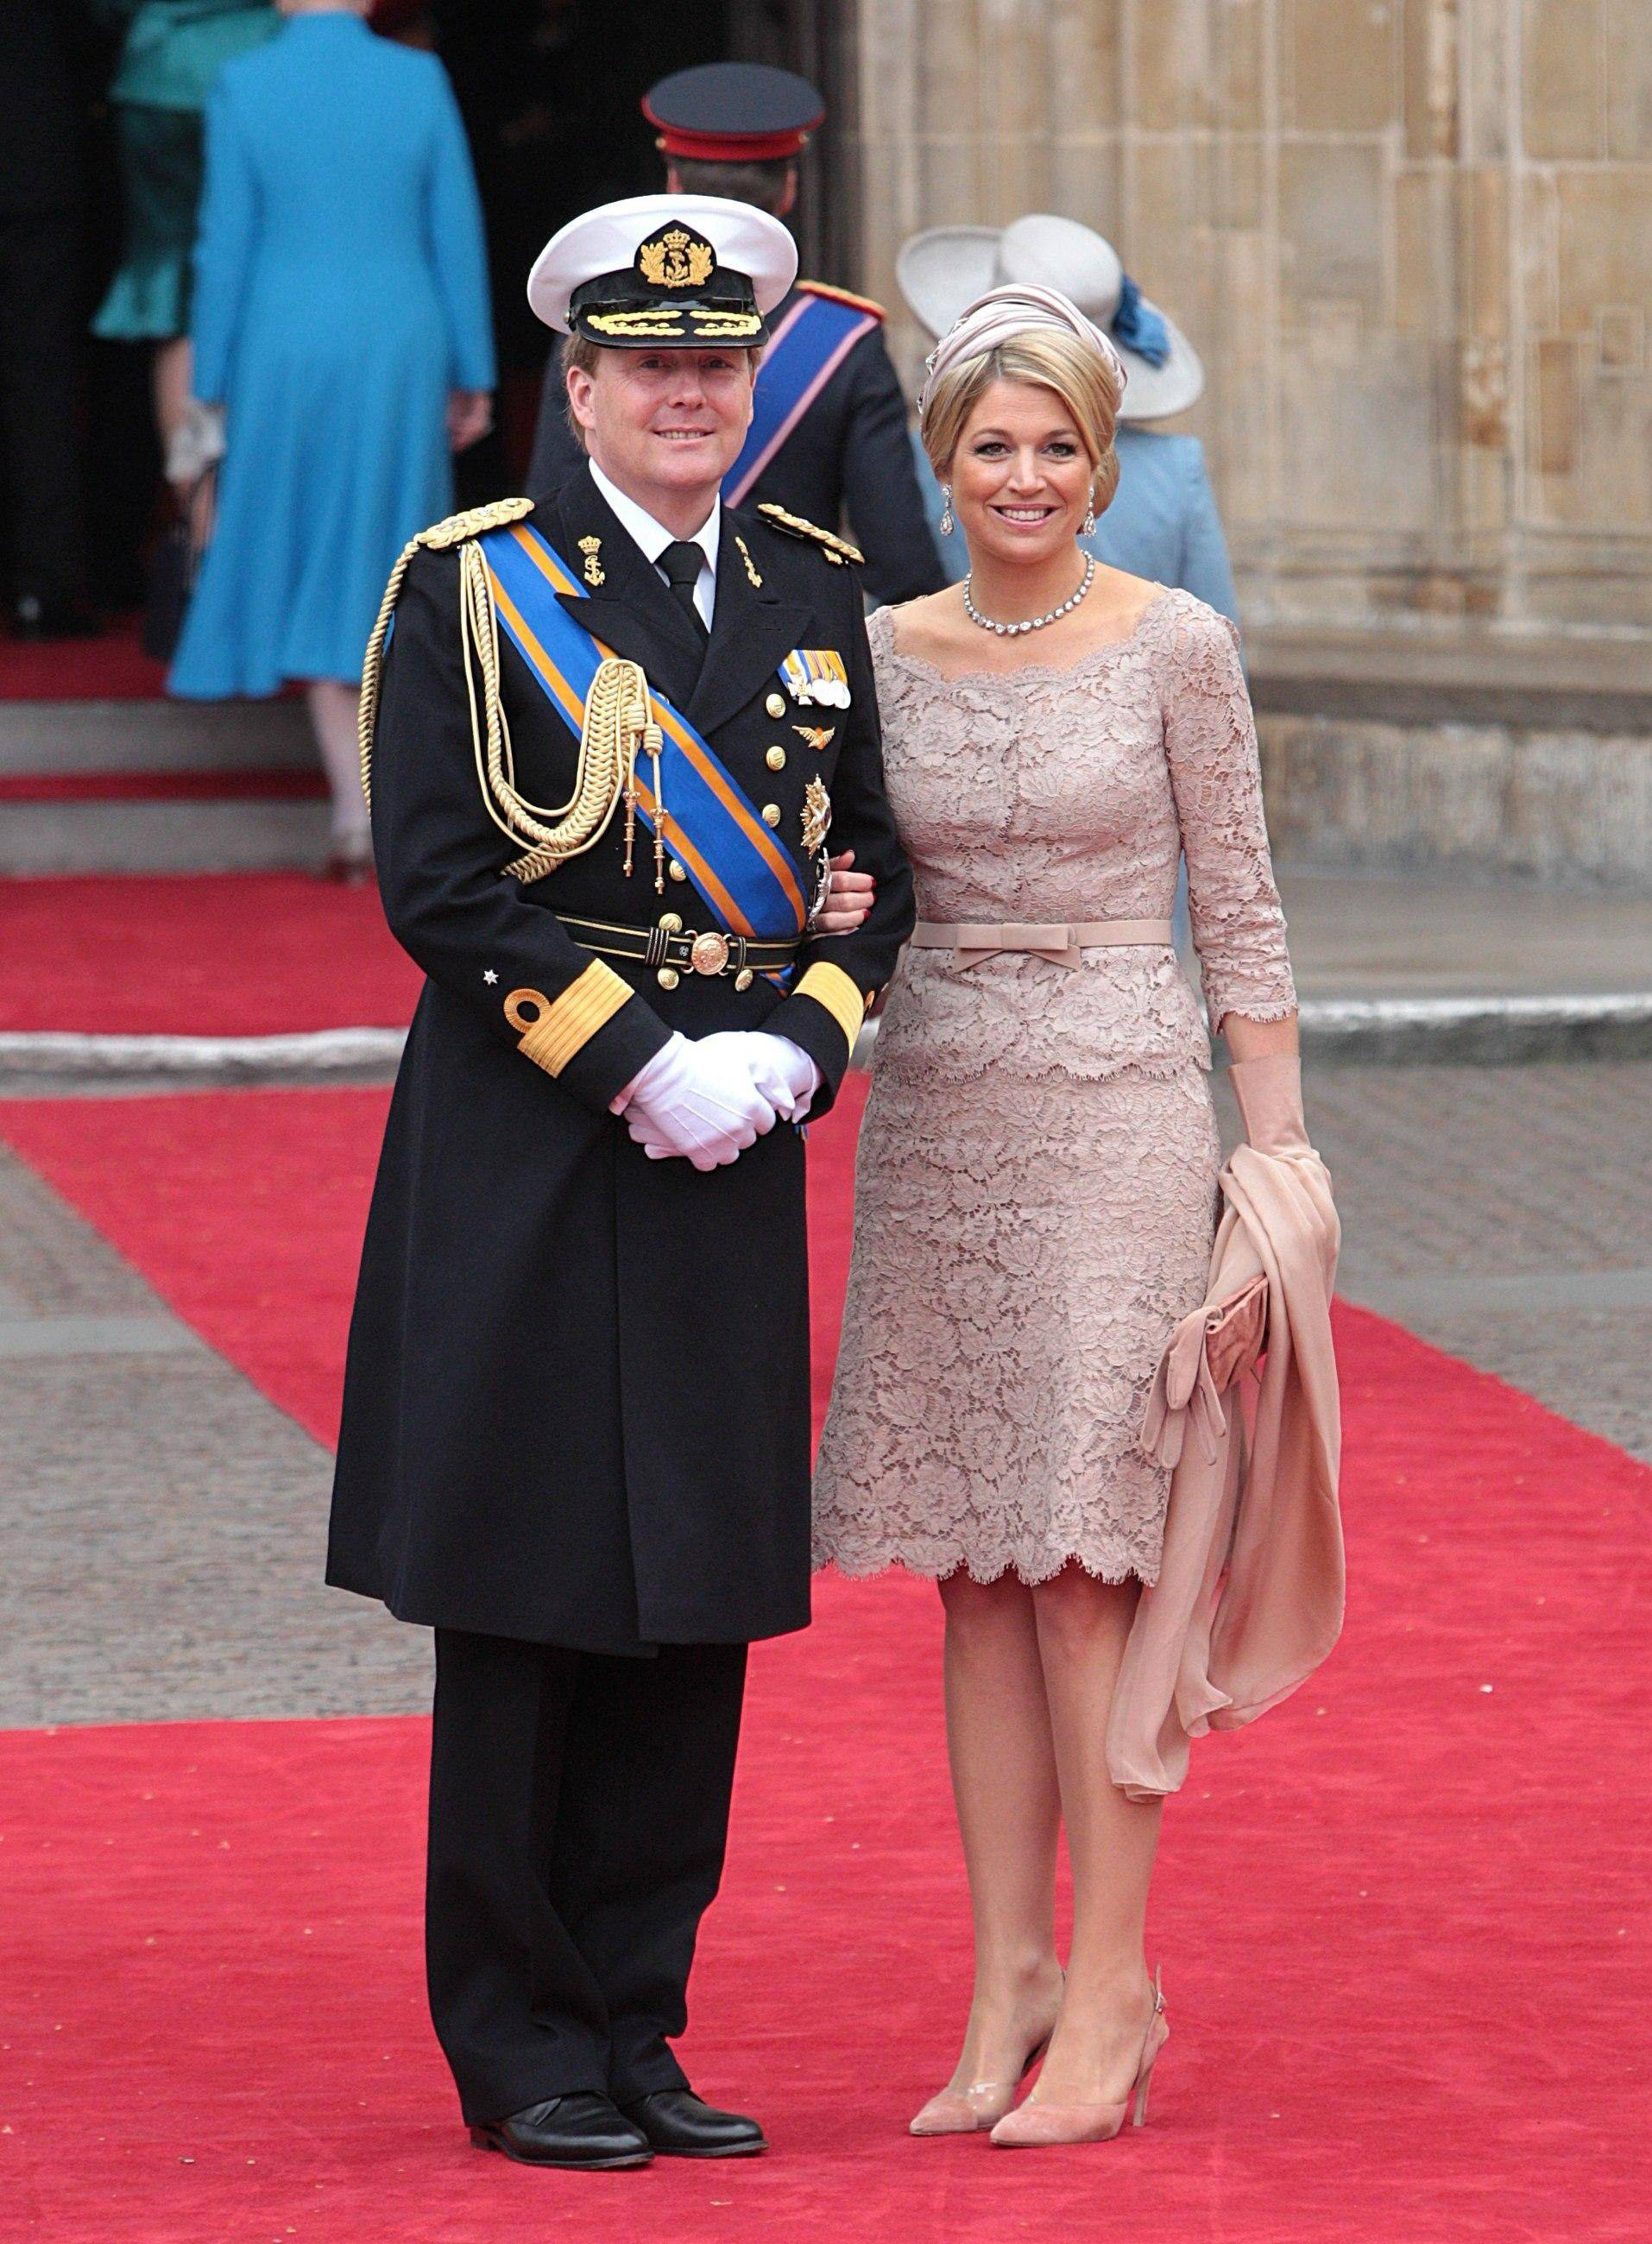 Netherlands' Crown Prince Willem-Alexander and Princess Maxima arrive at Westminster Abbey in London where Britain's Prince William and Kate Middleton will marry, Friday April 29, 2011.